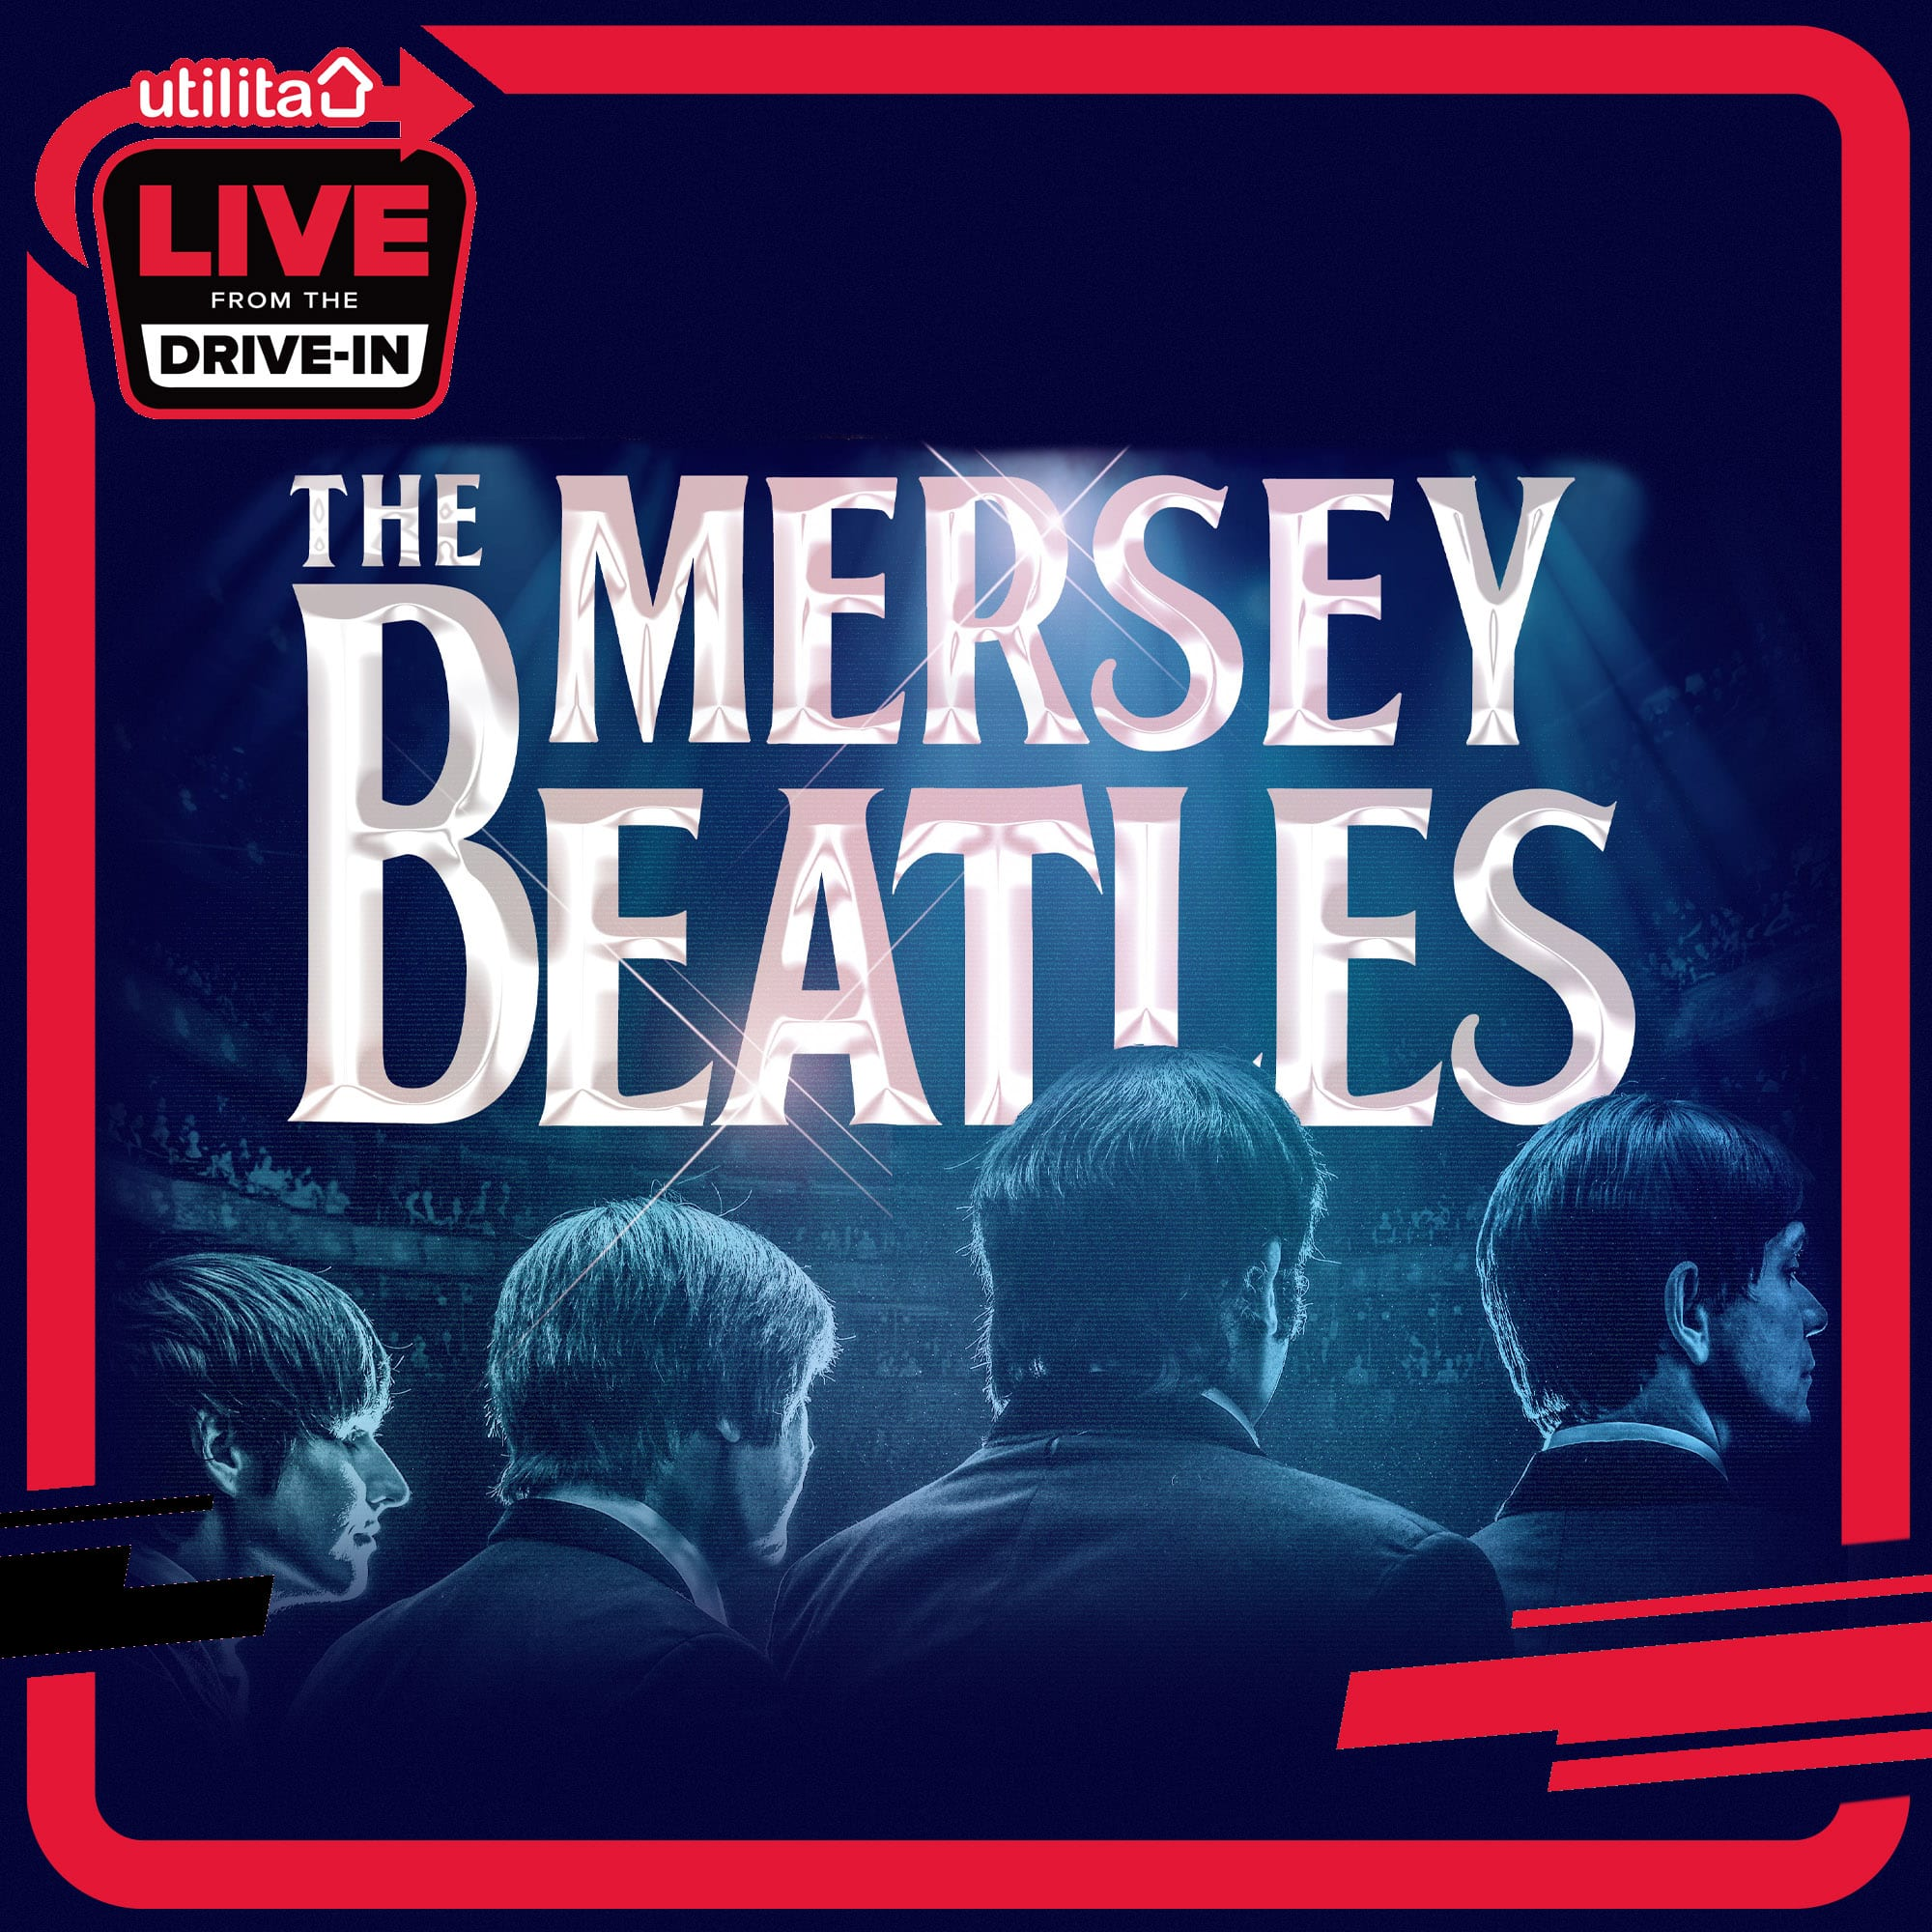 THE MERSEY BEATLES JOIN 'UTILITA LIVE FROM THE DRIVE-IN' SERIES